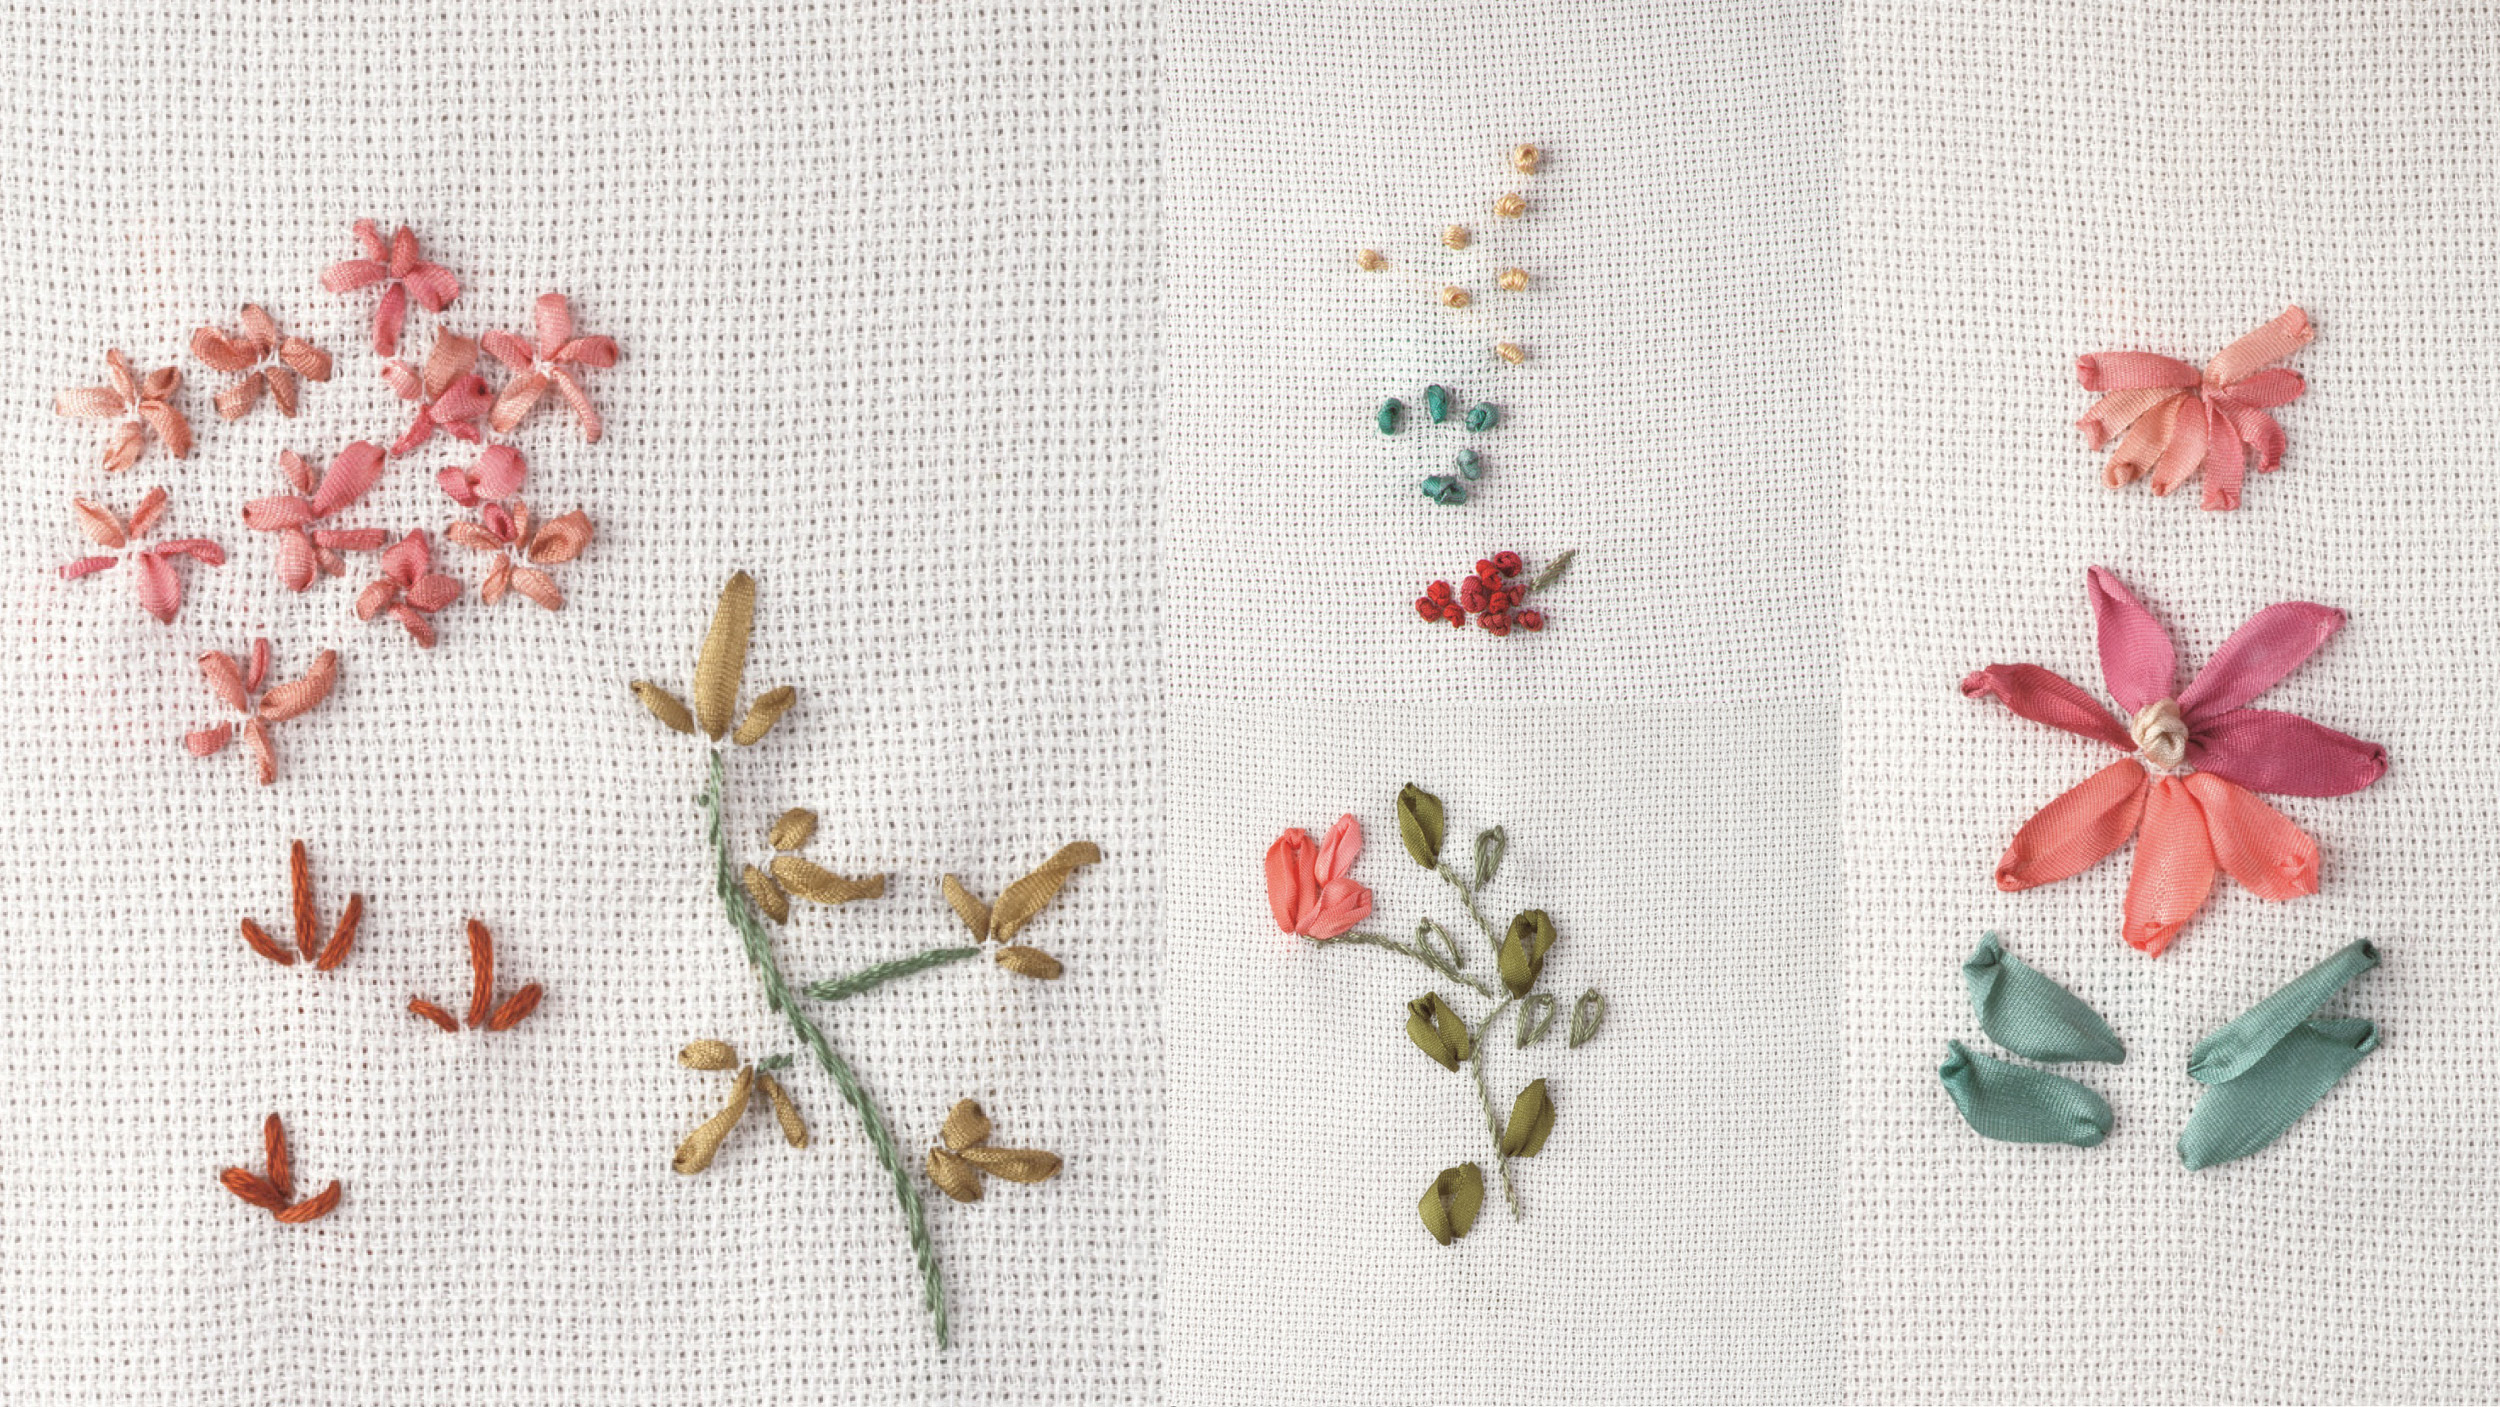 A Beginners' Guide to Silk Ribbon Embroidery   Threads